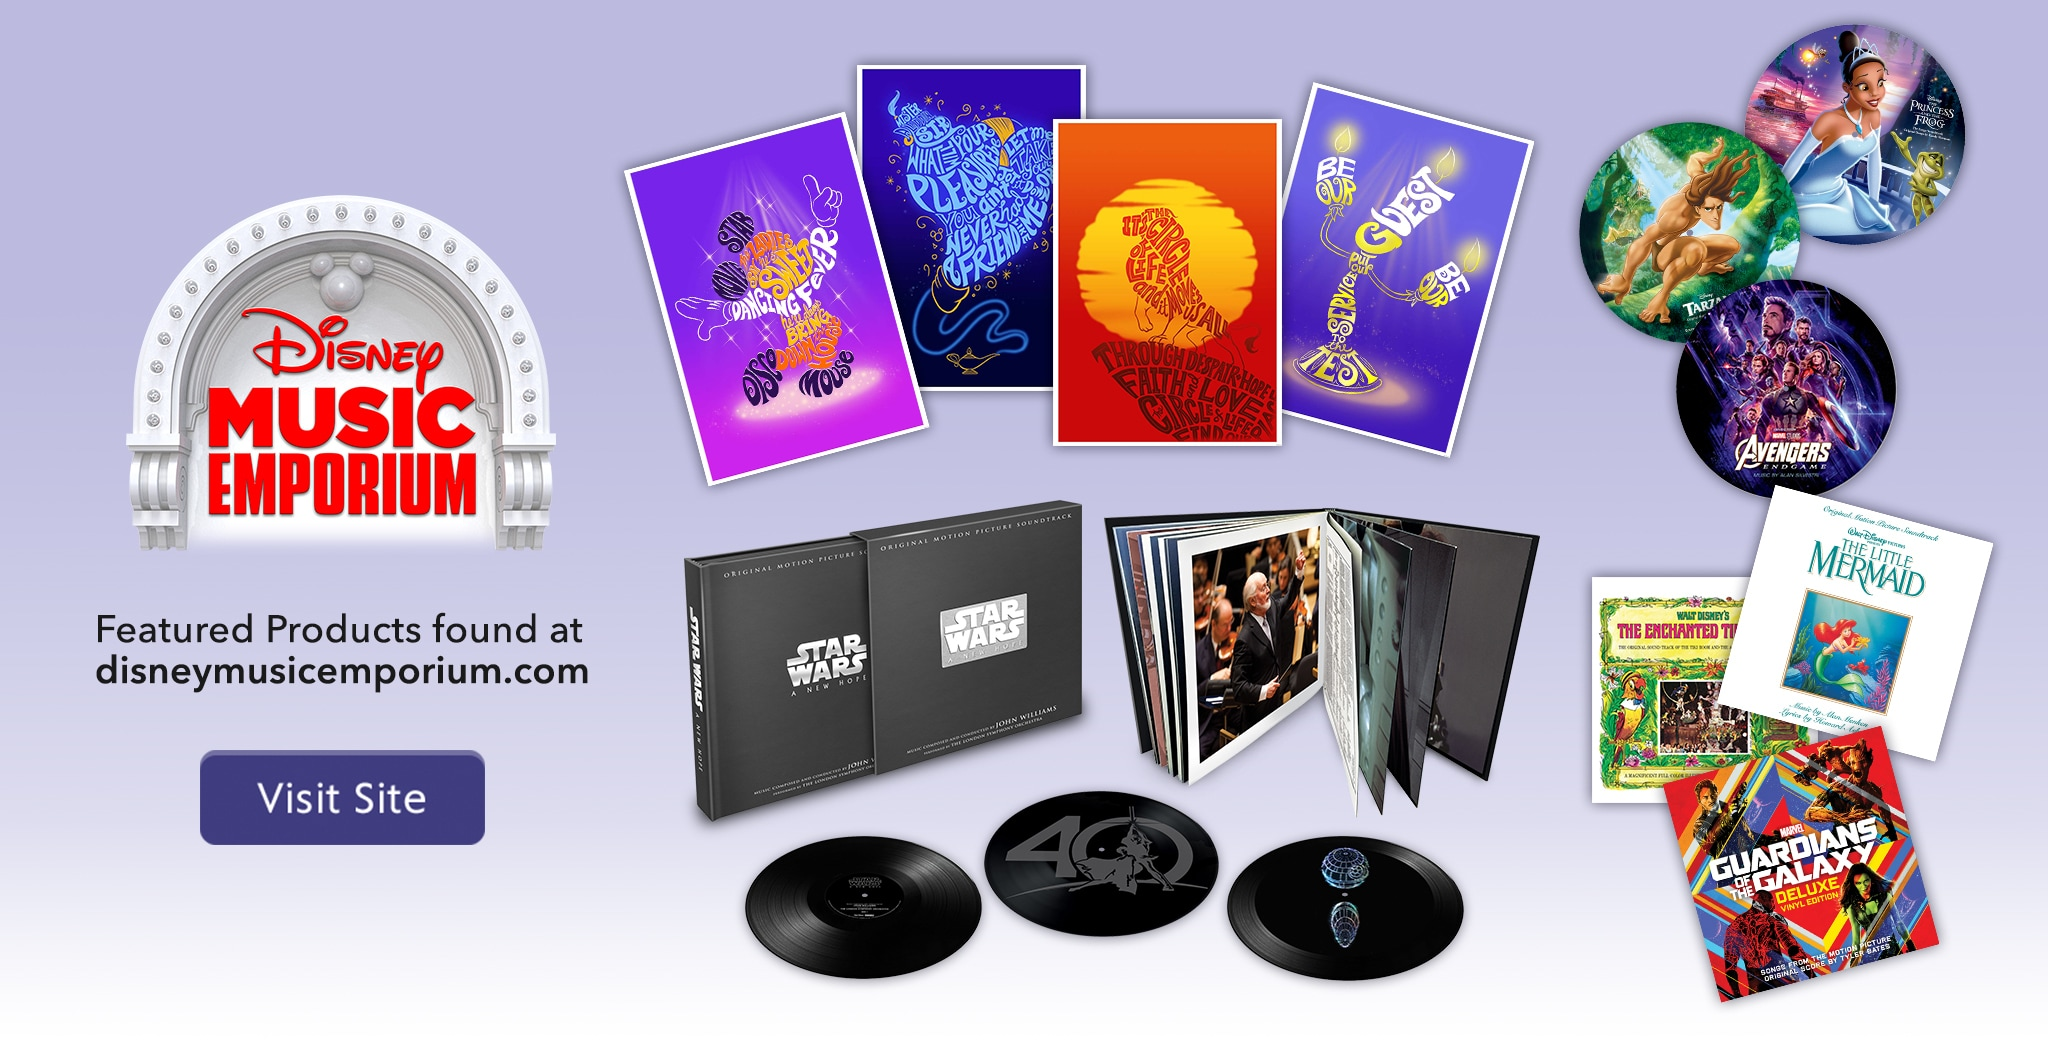 Visit for Featured Products from Disney Music Emporium